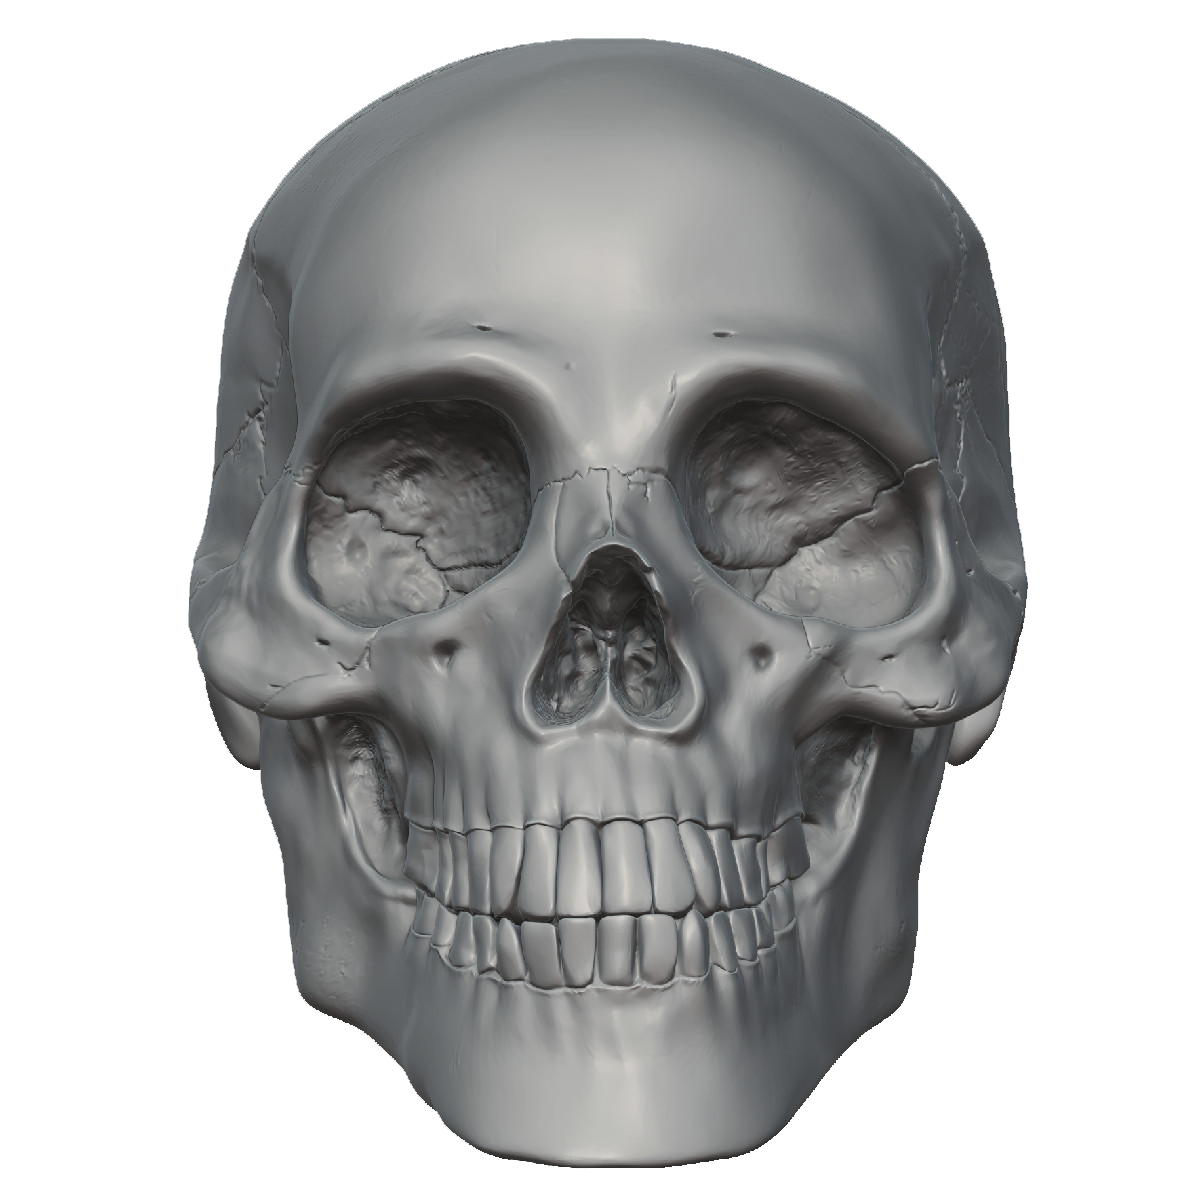 Skeleton Head Free Png Image PNG Image - Skeleton HD PNG